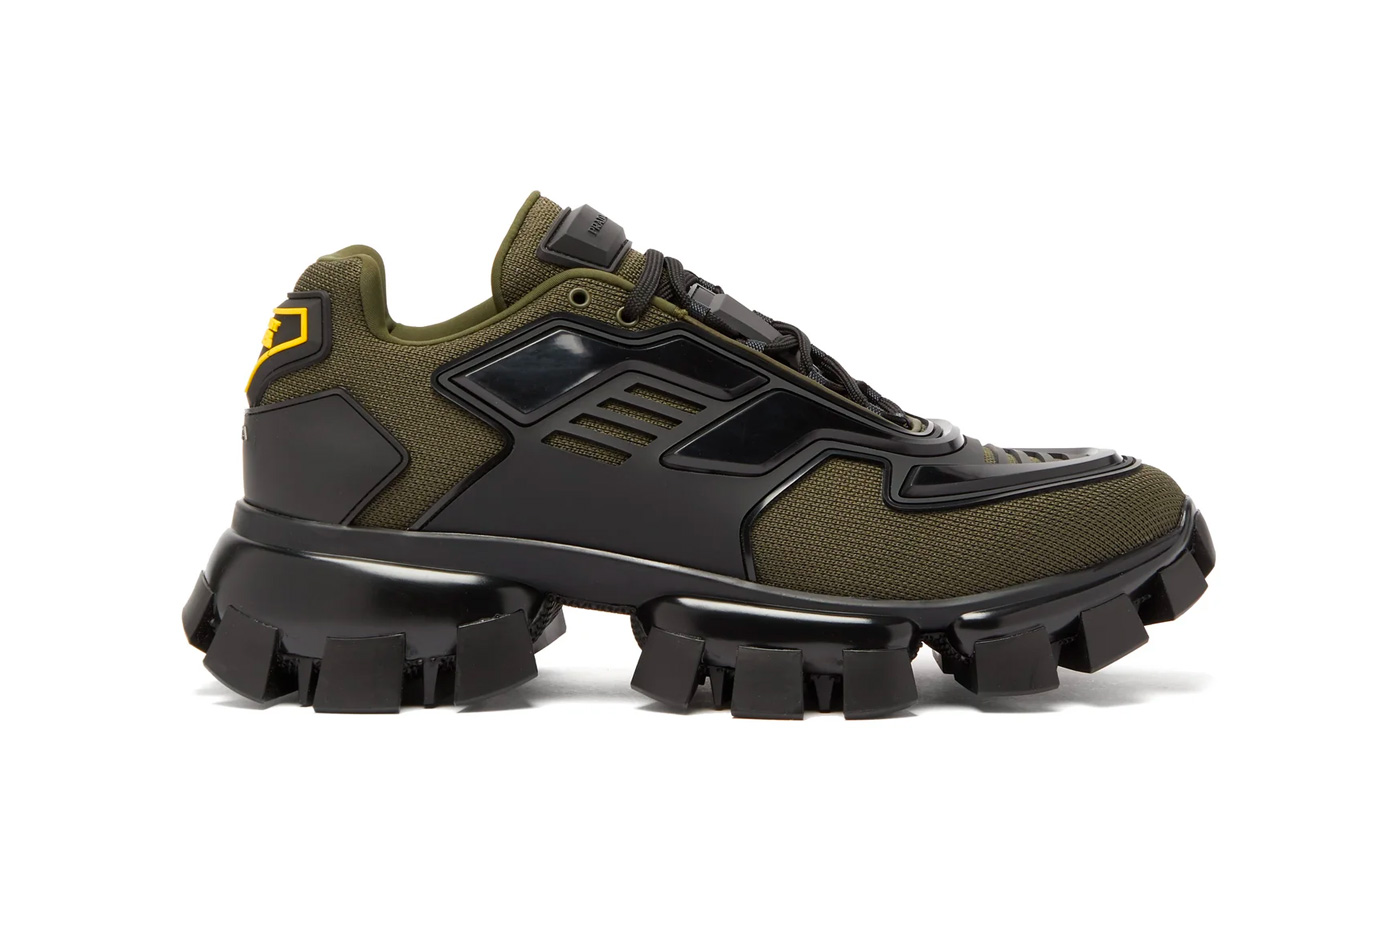 Prada Cloudbust Thunder Knitted Sneakers Release Info price drop date olive black matchesfashion.com buy now designer shoes trainers chunky treaded outsole fw19 fall/winter 2019 frankenstein